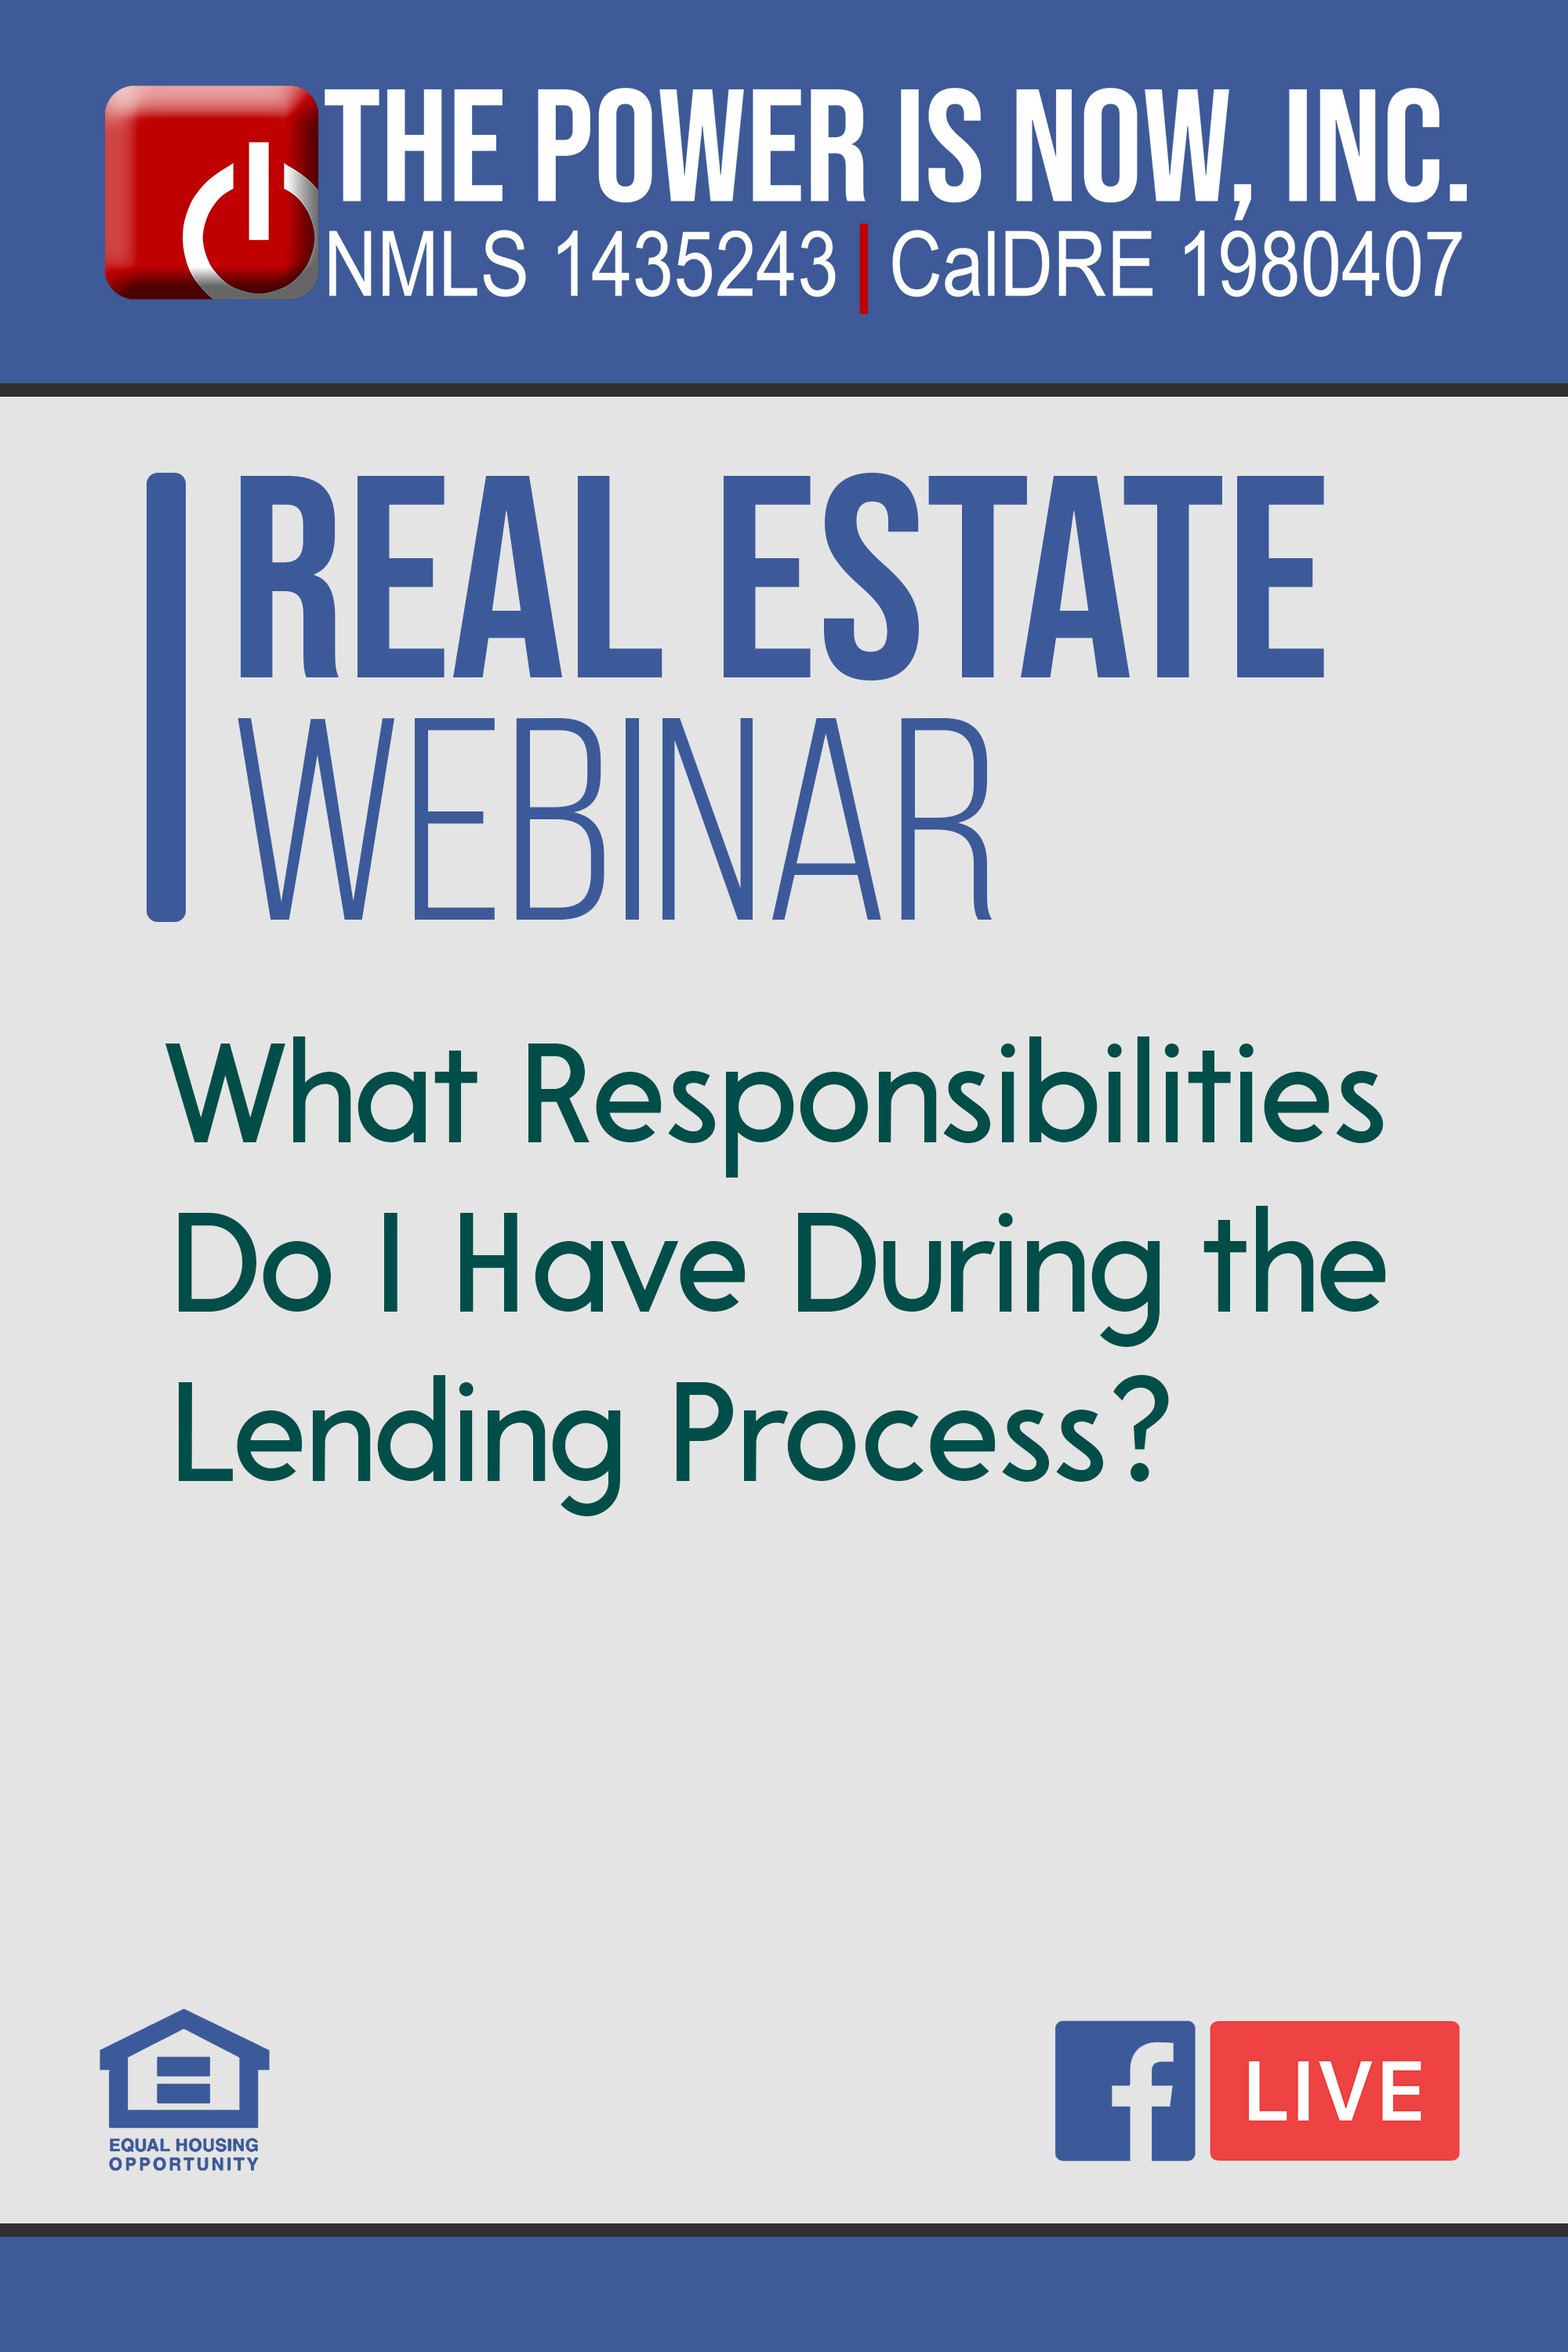 What Responsibilities Do I Have During the Lending Process?